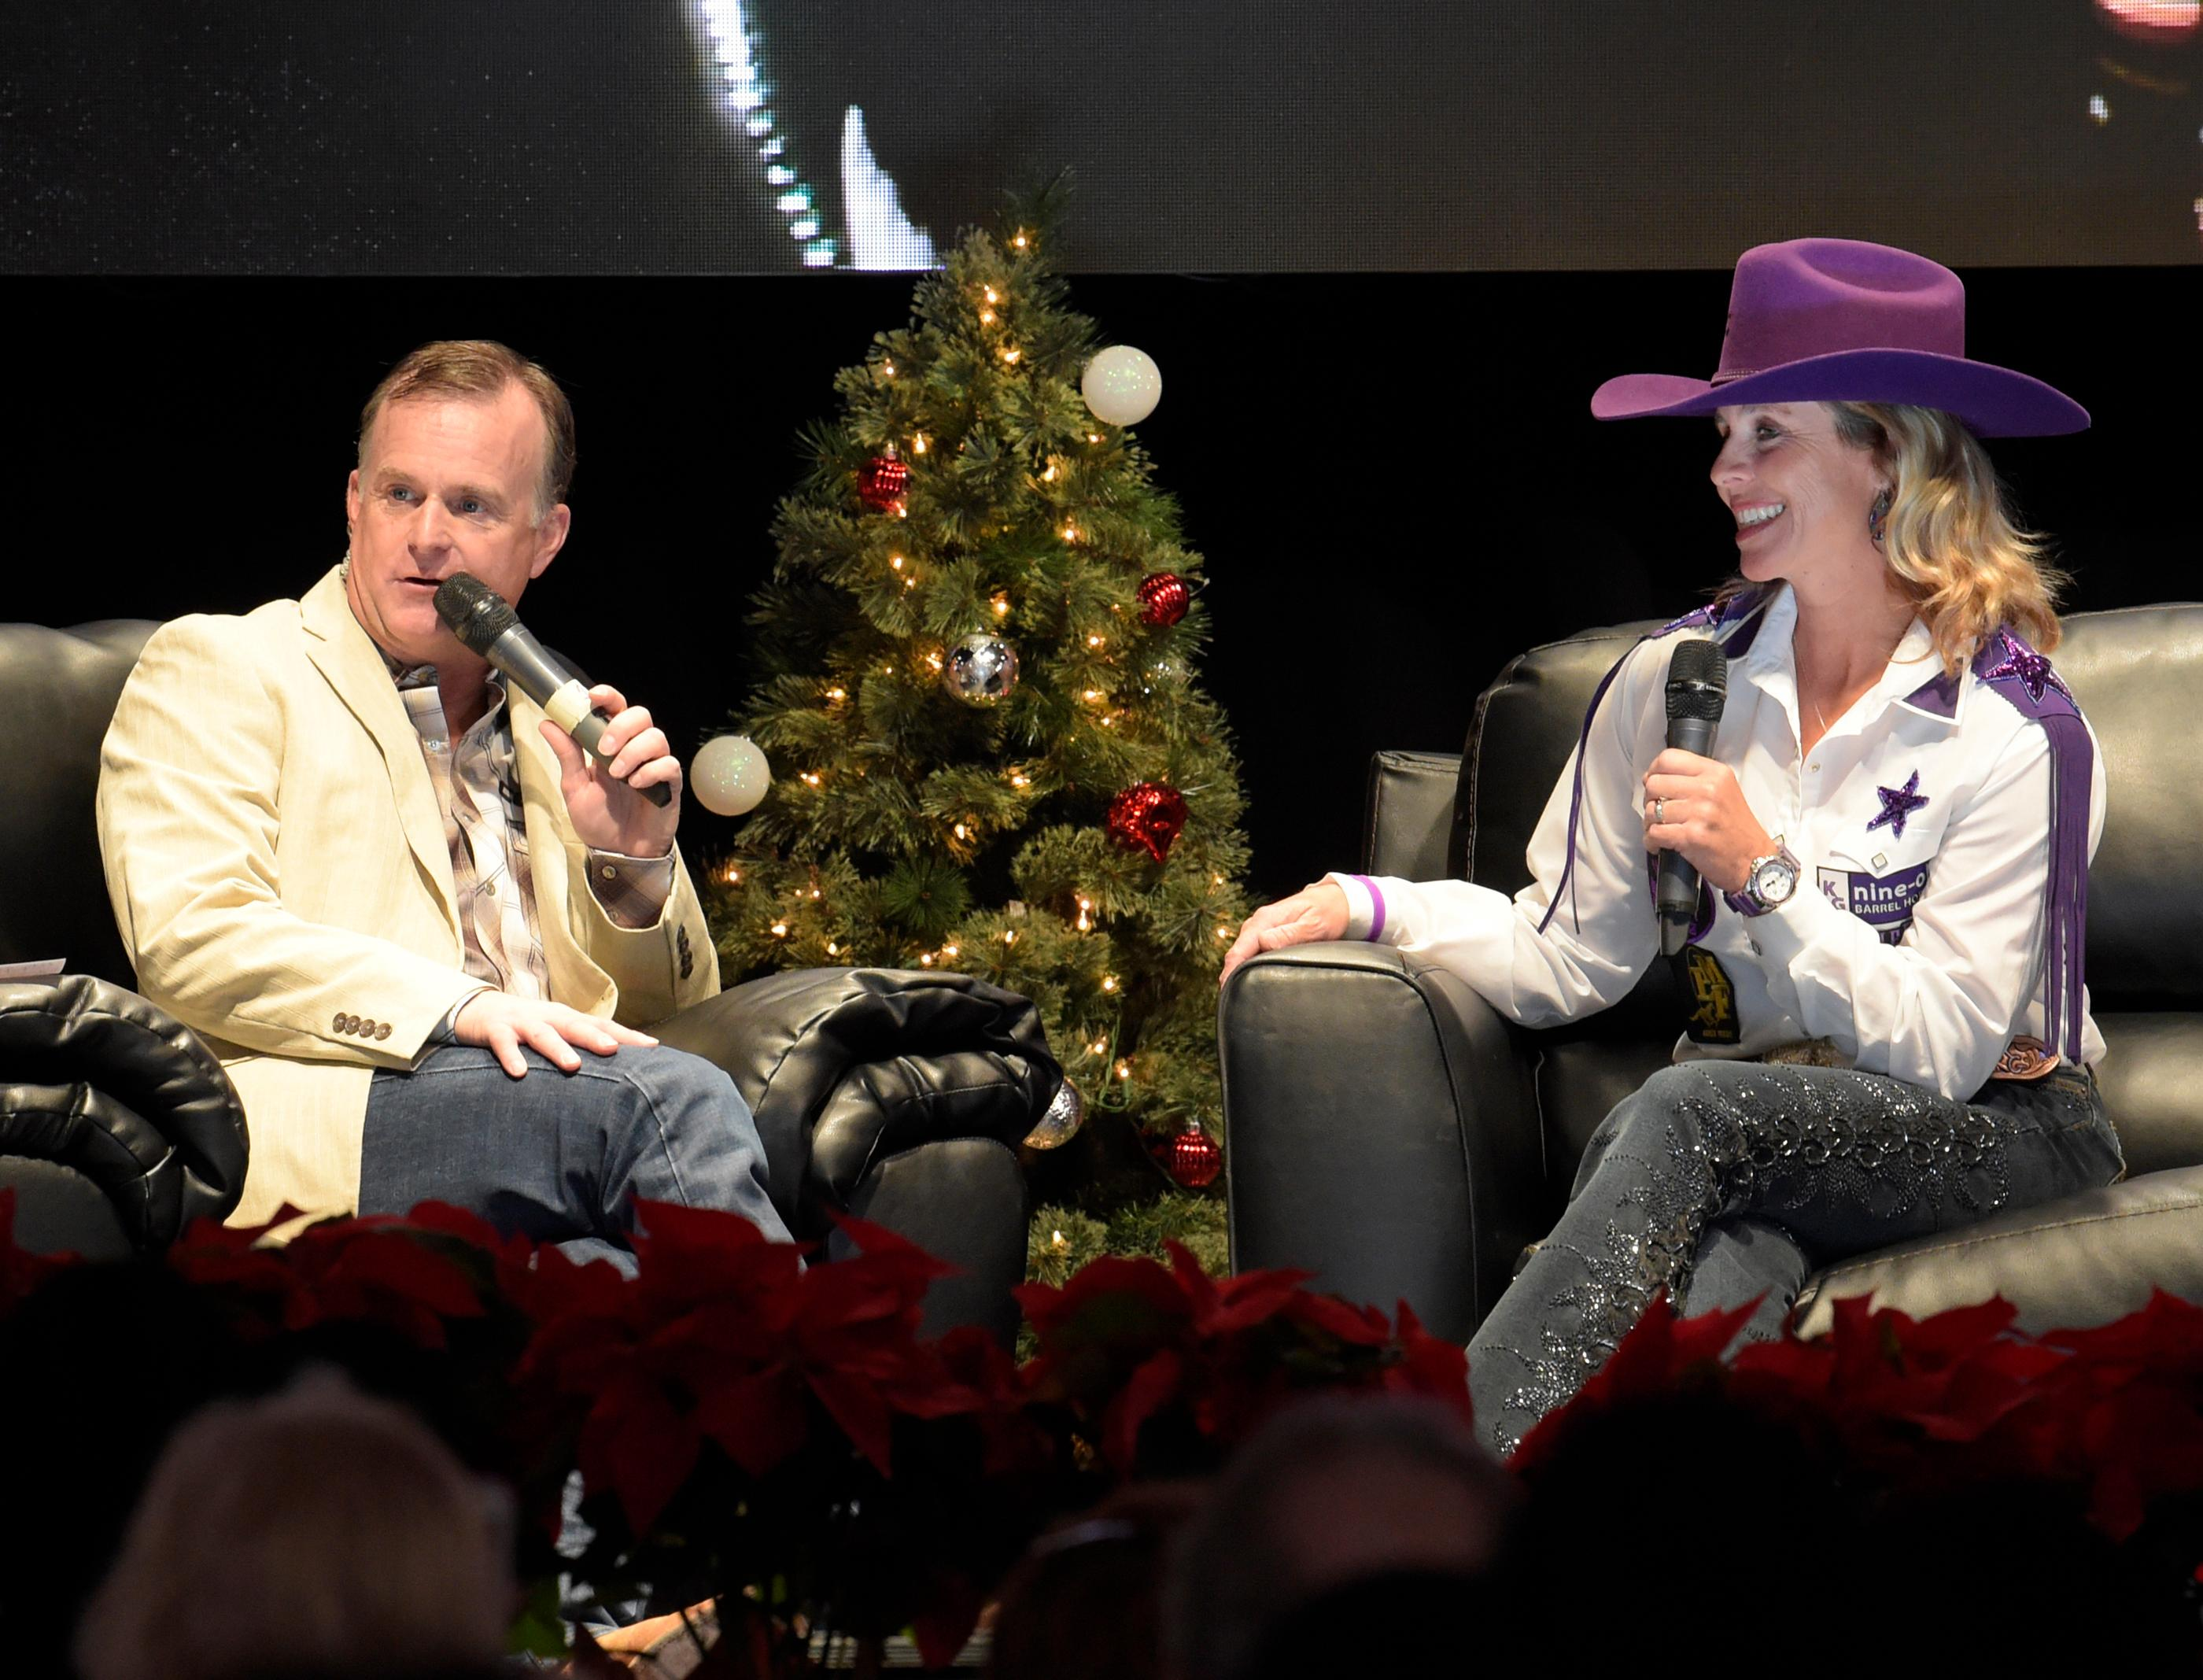 """Outside the Barrel"" with Flint Rasmussen, Entertainer and Rodeo Clown, as he interviews Barrel Racer and Veterinarian Cathy Grahams on the Rodeo Live Stage during Cowboy Christmas at the Las Vegas Convention Center. Sunday December 10, 2017. [Glenn Pinkerton/Las Vegas News Bureau]"